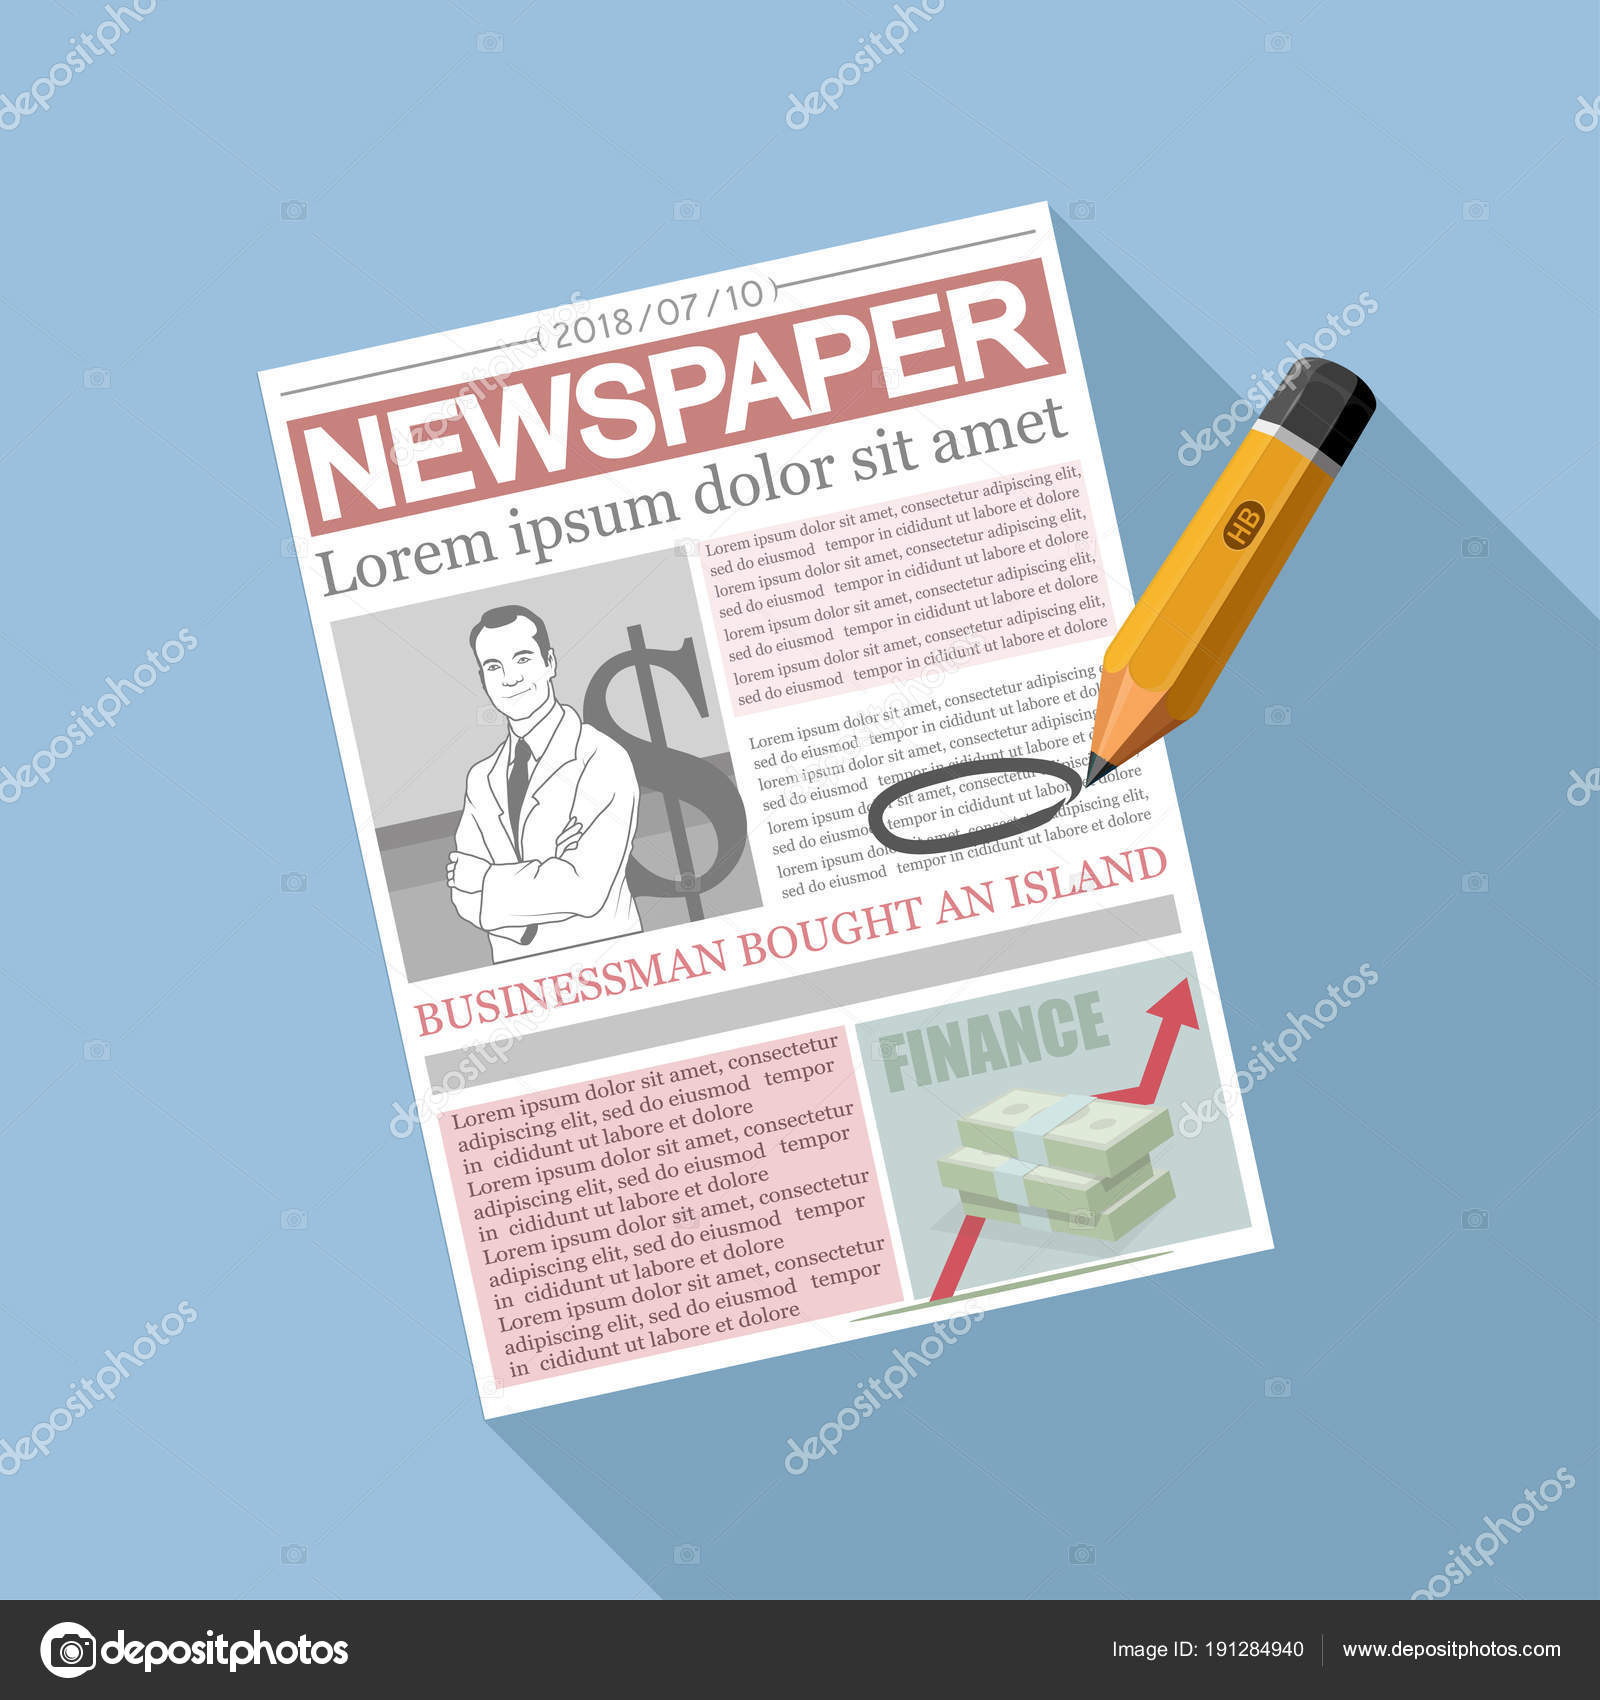 Newspaper Concept Newspaper Template     Stock Vector     Newspaper Concept Newspaper Template     Stock Vector